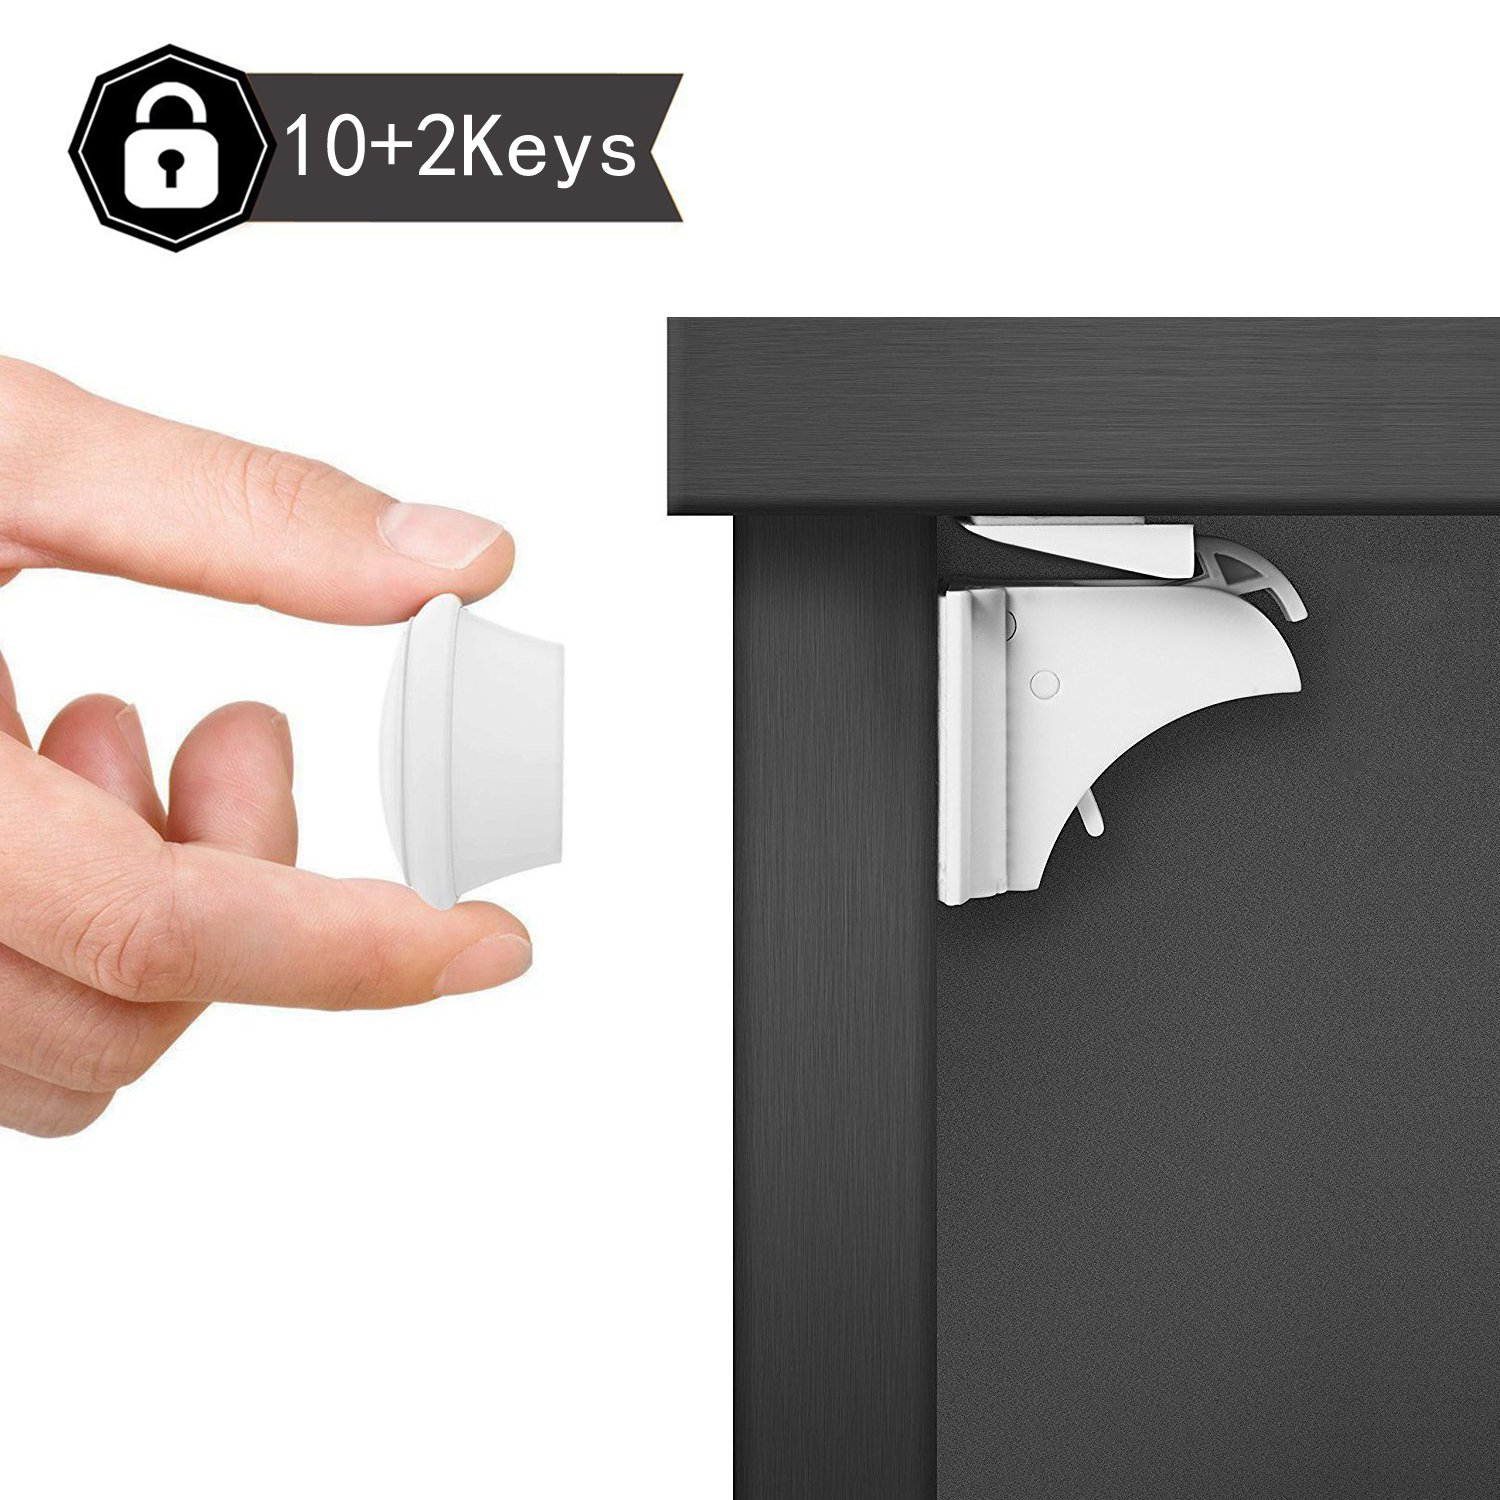 Amazon.com  Dokon Child Safety Magnetic Cupboard Locks ( 10 Locks + 2 Keys) No Tools Or Screws Needed Baby Safety Locks for Cabinets and Drawers ...  sc 1 st  Amazon.com & Amazon.com : Dokon Child Safety Magnetic Cupboard Locks ( 10 Locks + ...